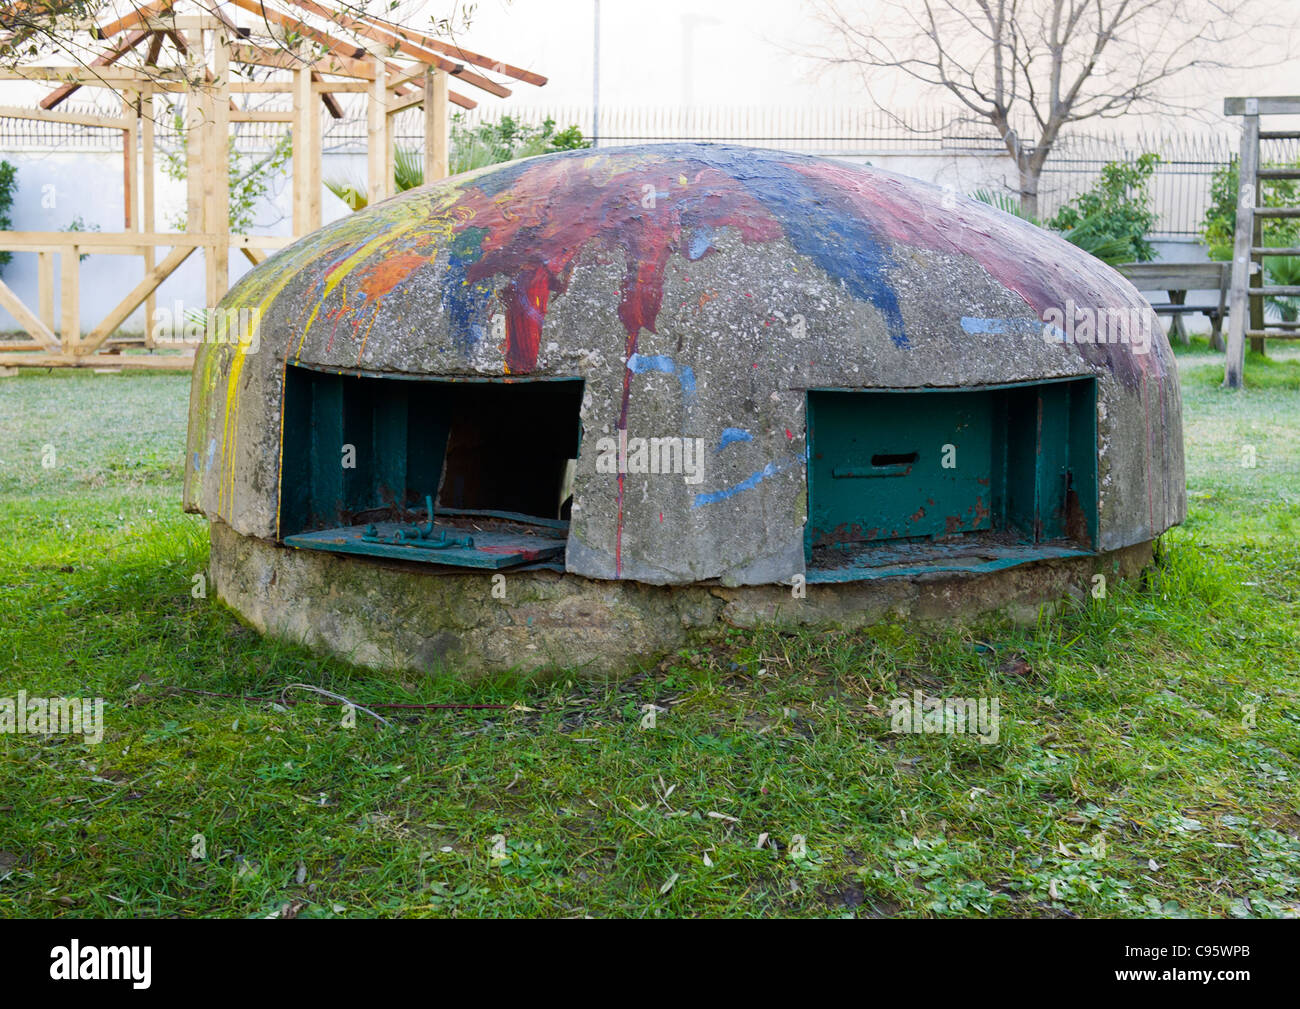 Defensive bunker or bomb shelter, Tirana, Albania.  Thousands of bunkers were built during the rule of Enver Hoxha. Stock Photo